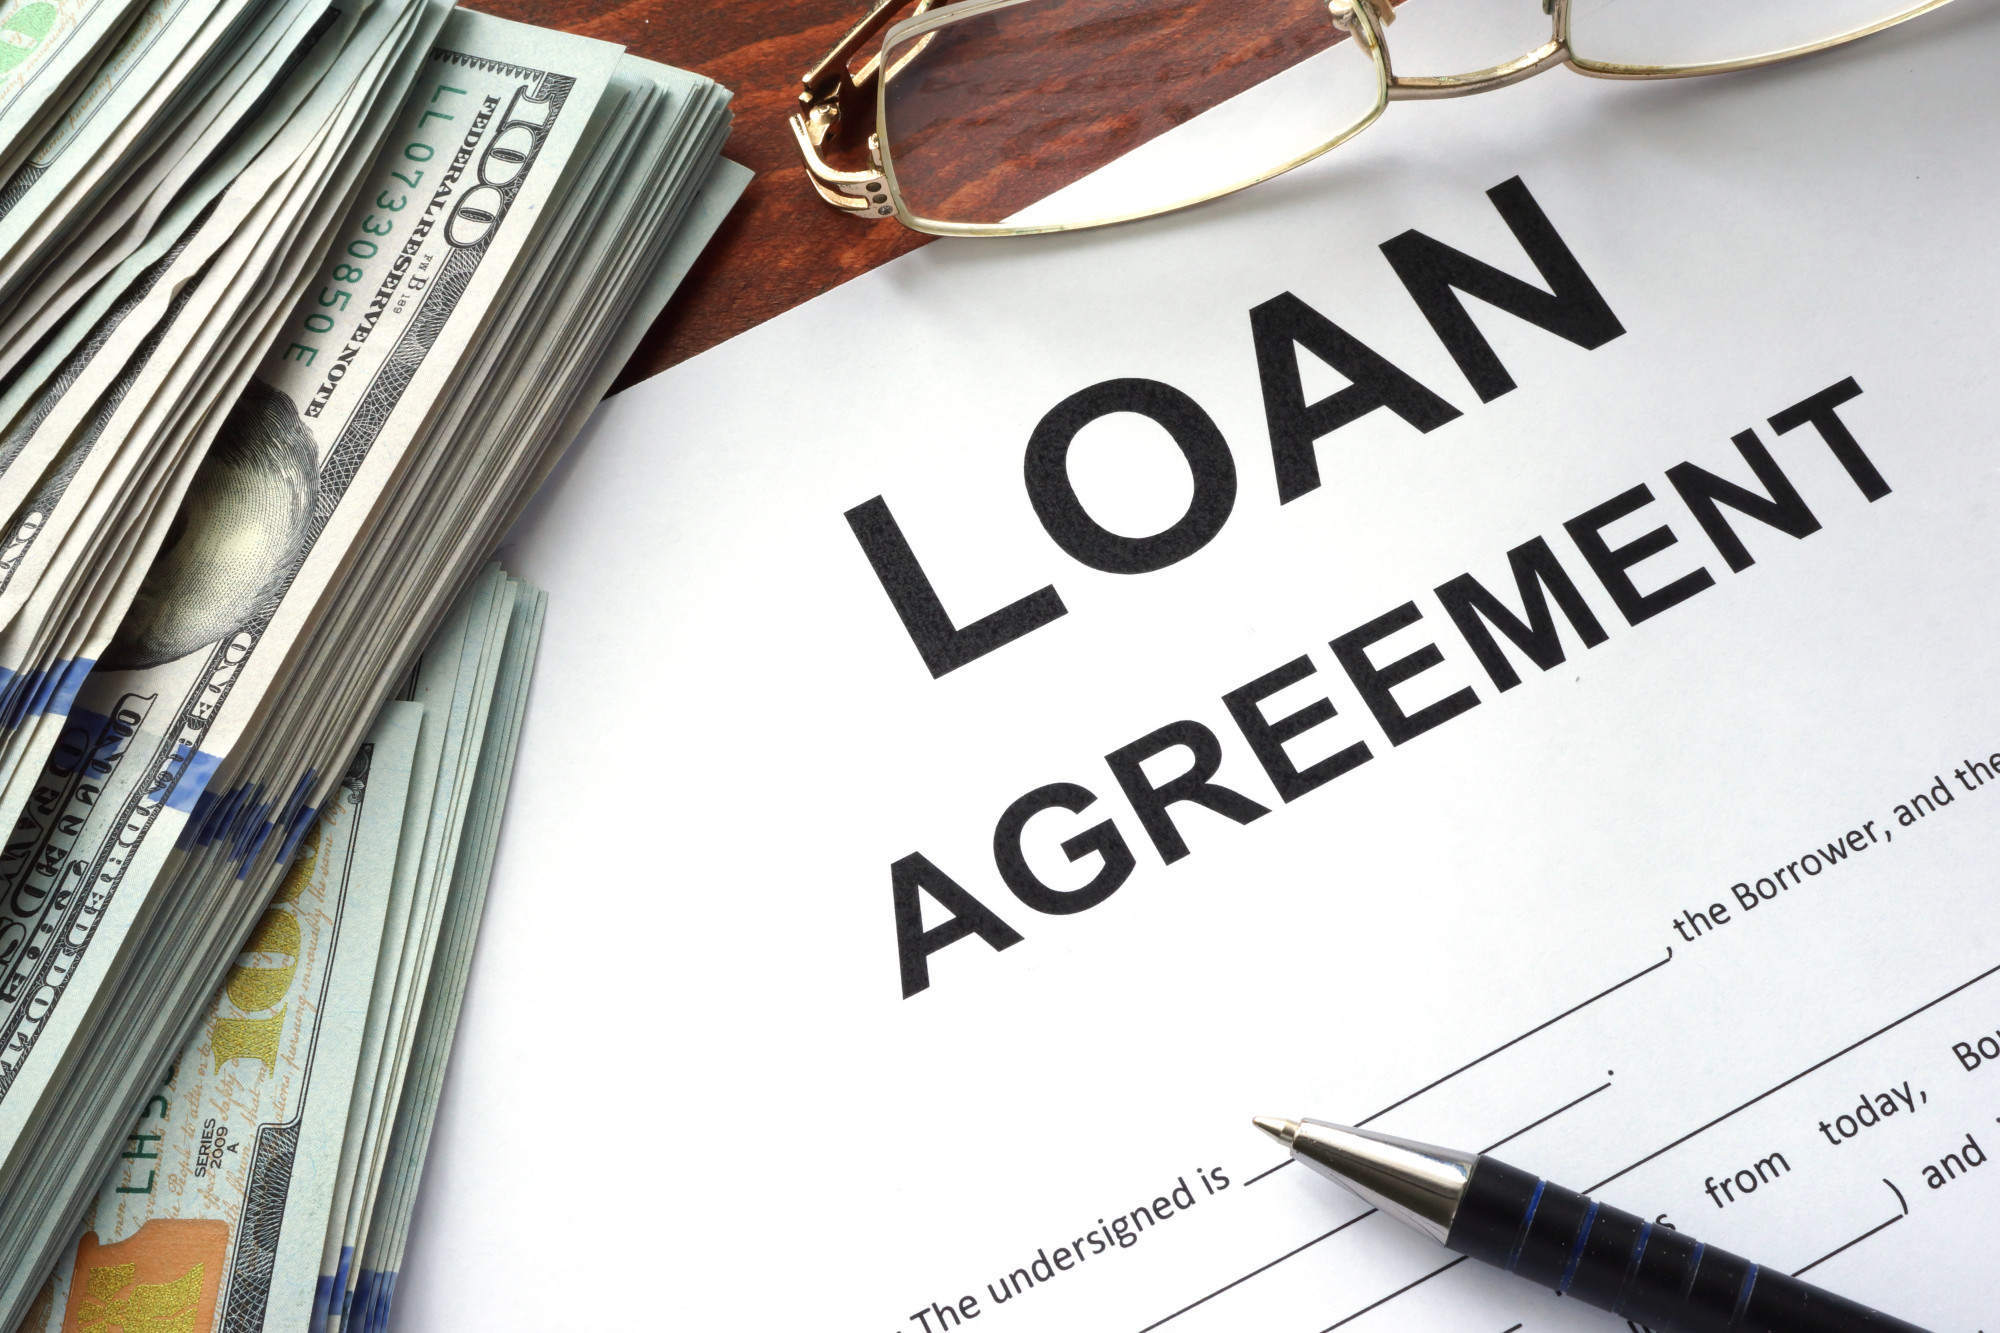 loan agreement form and money